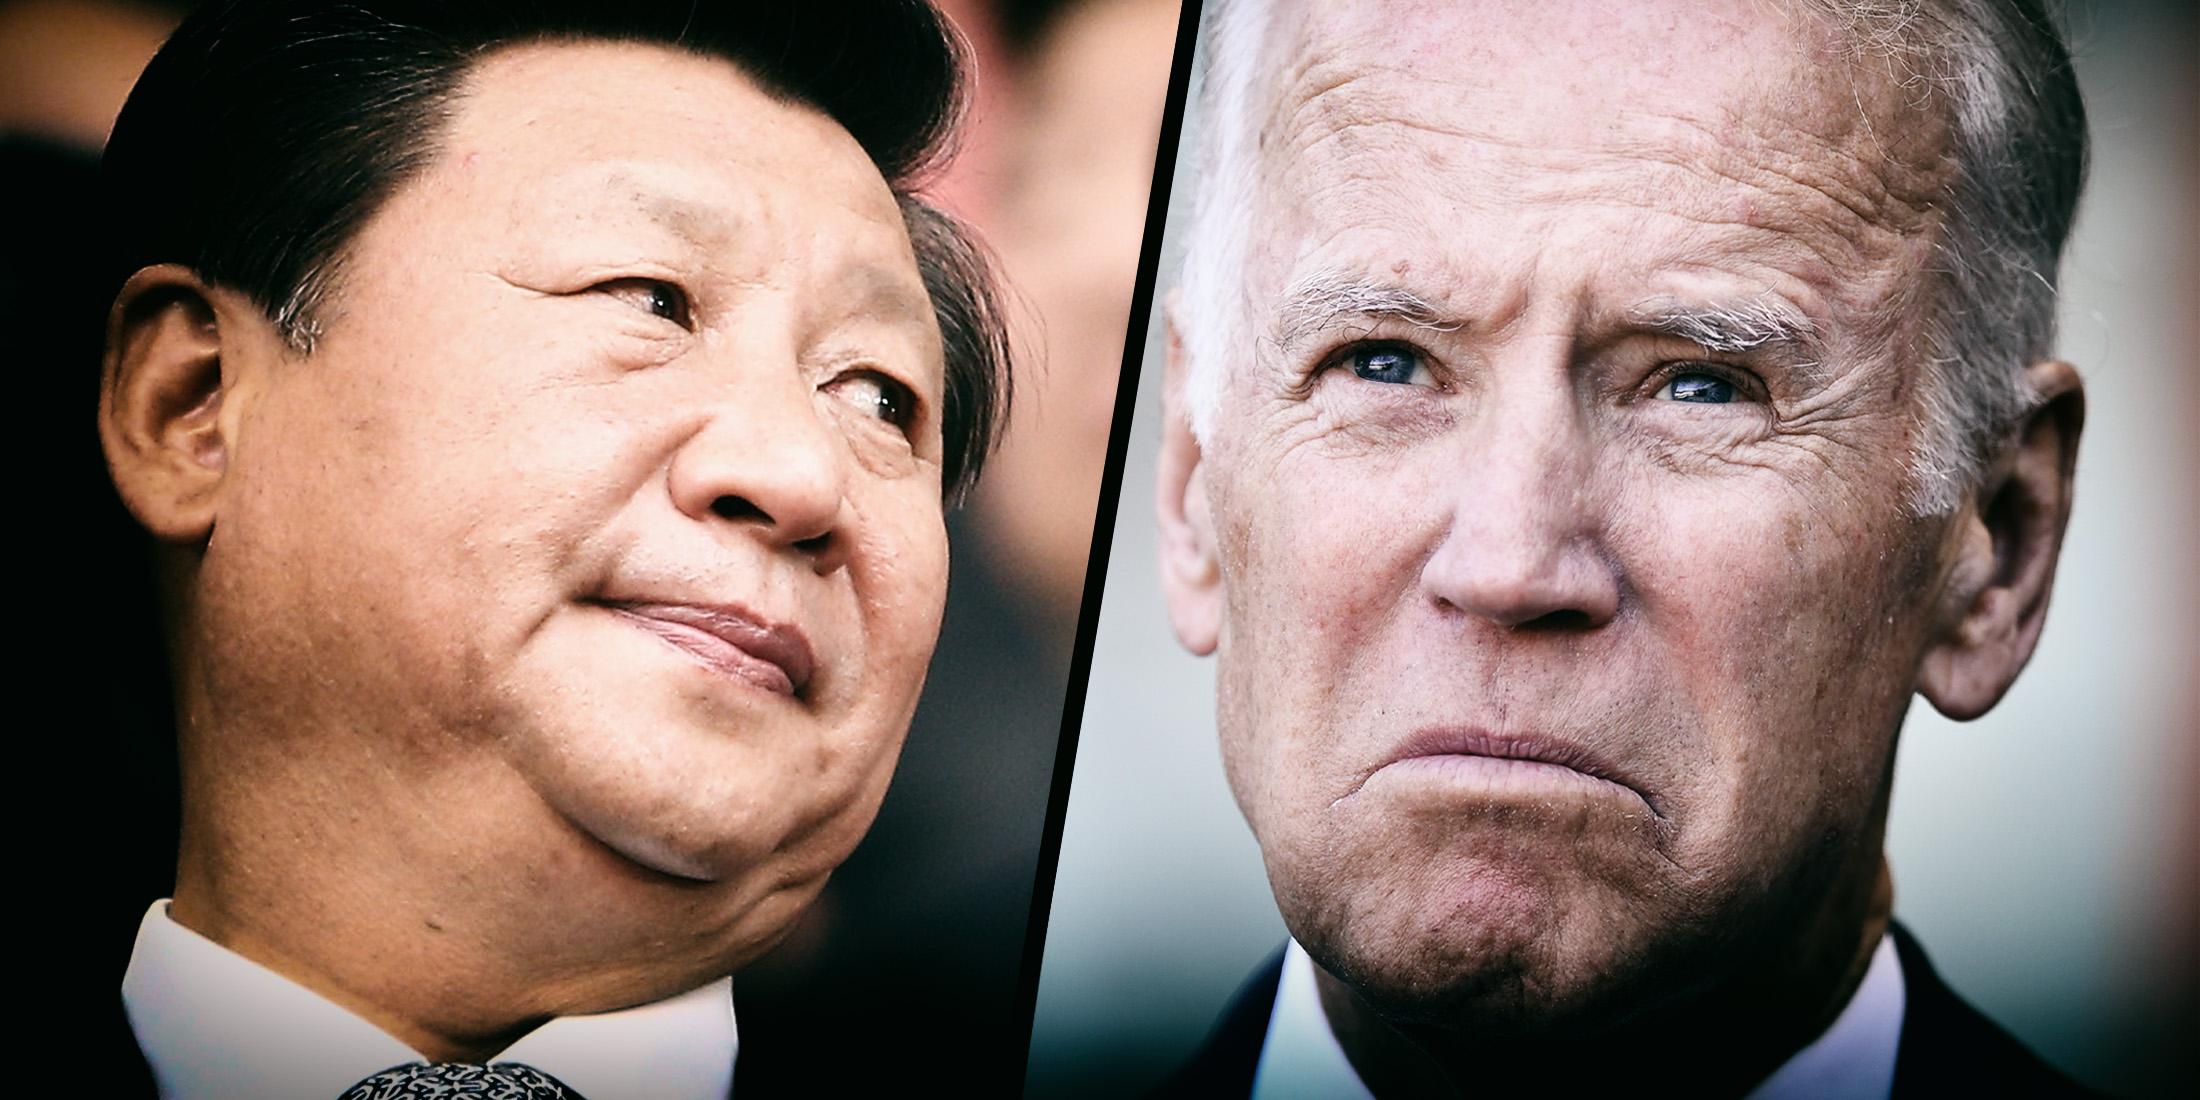 www.dailymaverick.co.za: How will the US and China reshape the global landscape?